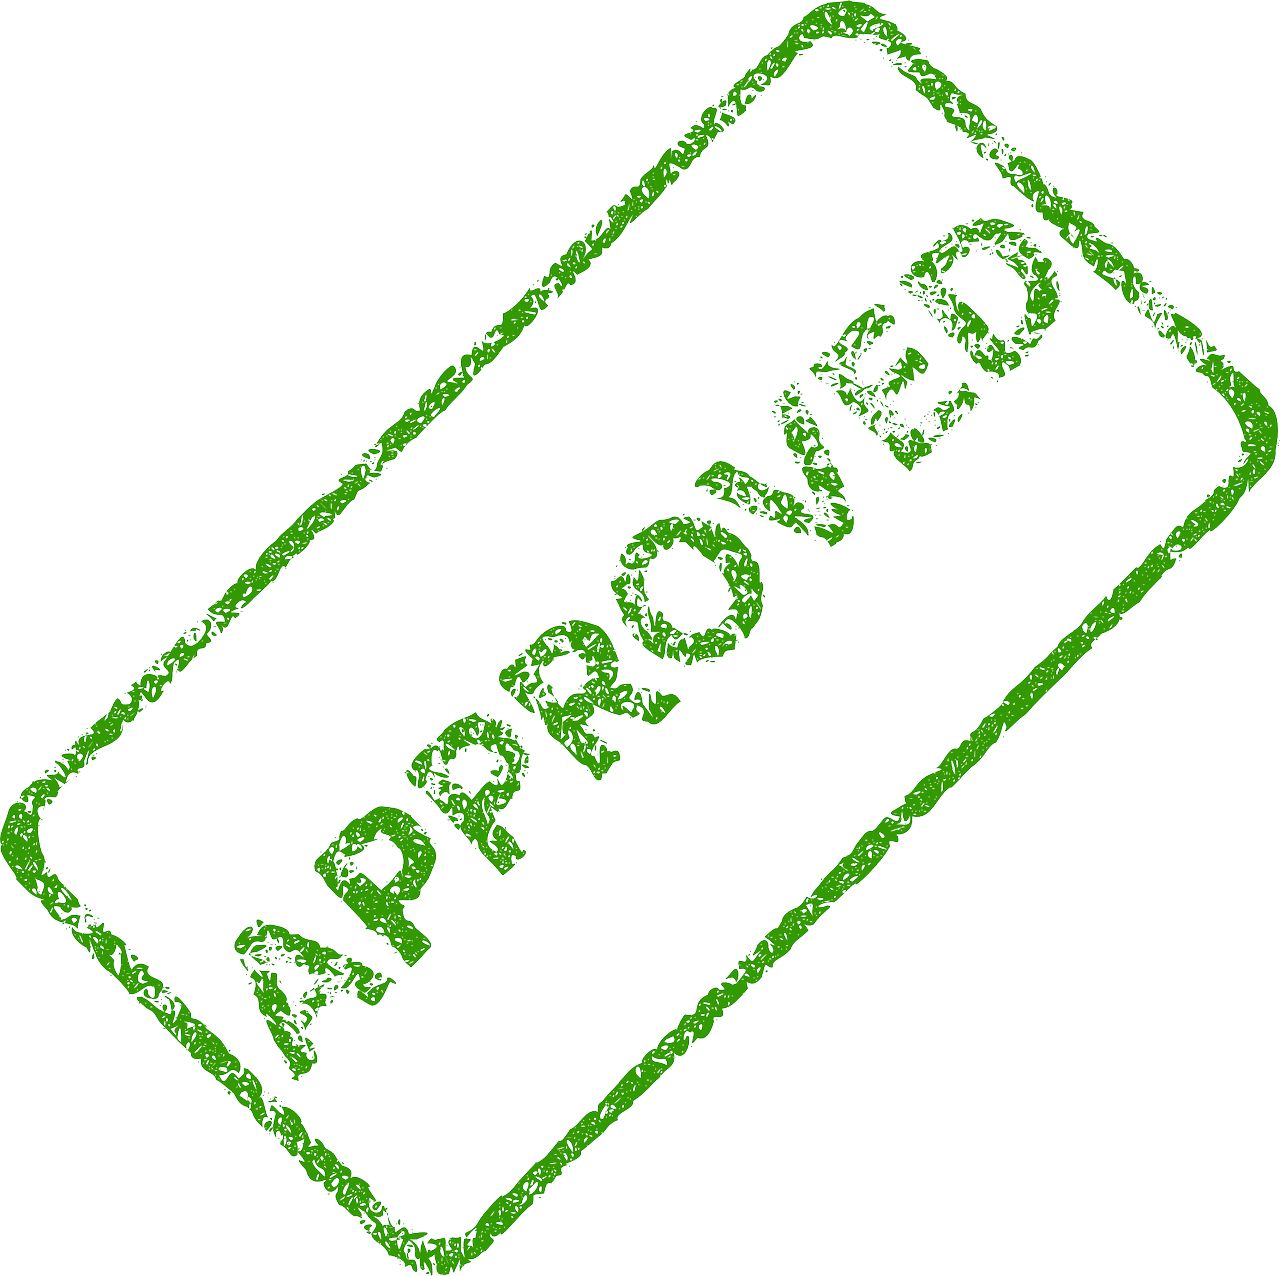 transparent stock Approve agree kallanish energy. Yes clipart green light